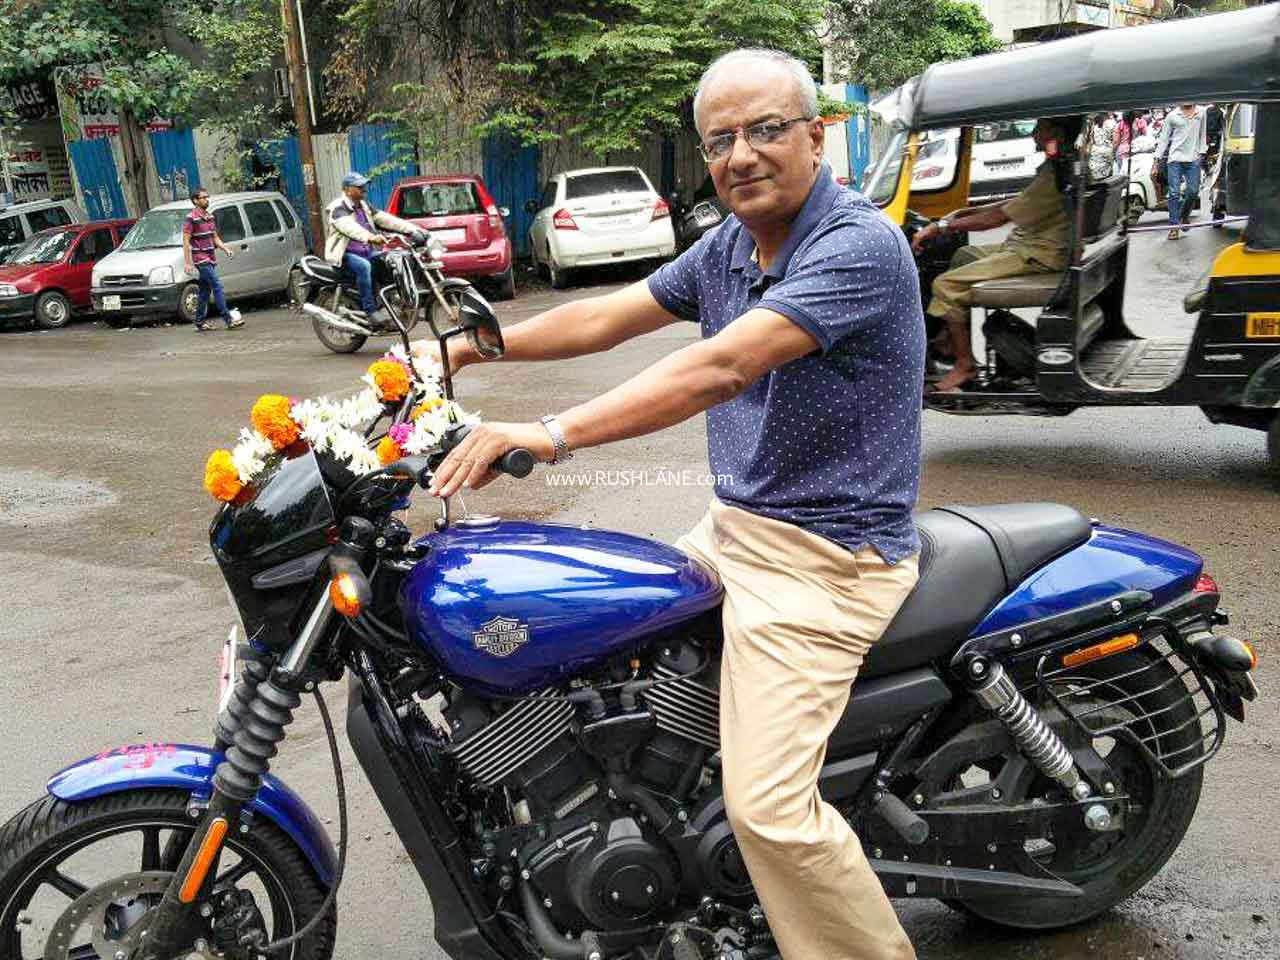 Harley Davidson to start home delivery of motorcycles – Street 750, Iron 883, etc